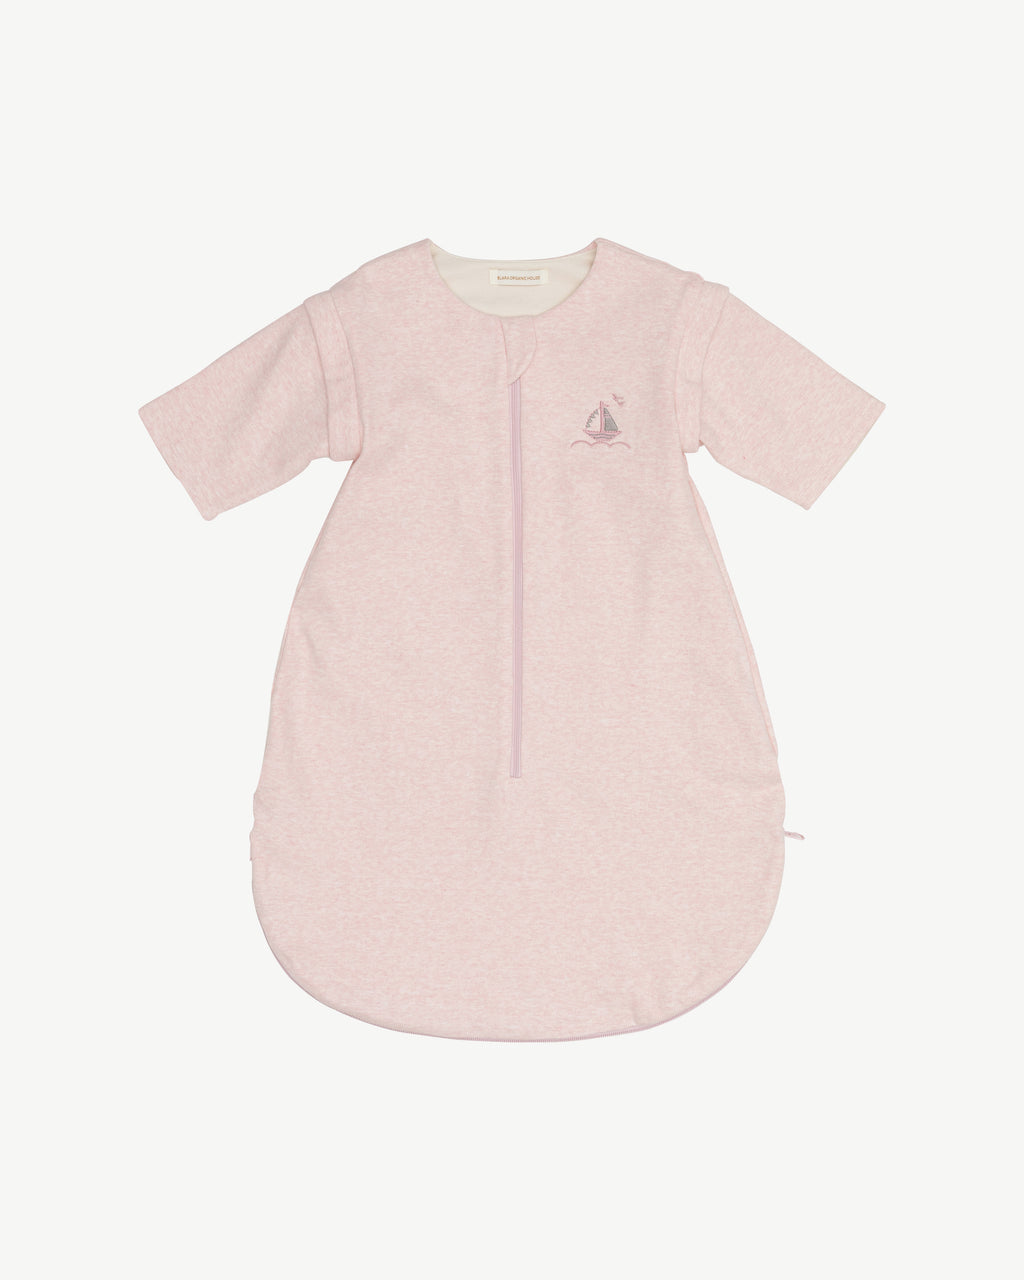 Pink Blara Nap Time Sleep Sack - Organic Cotton | Blara Organic House | Sustainable Baby Clothing